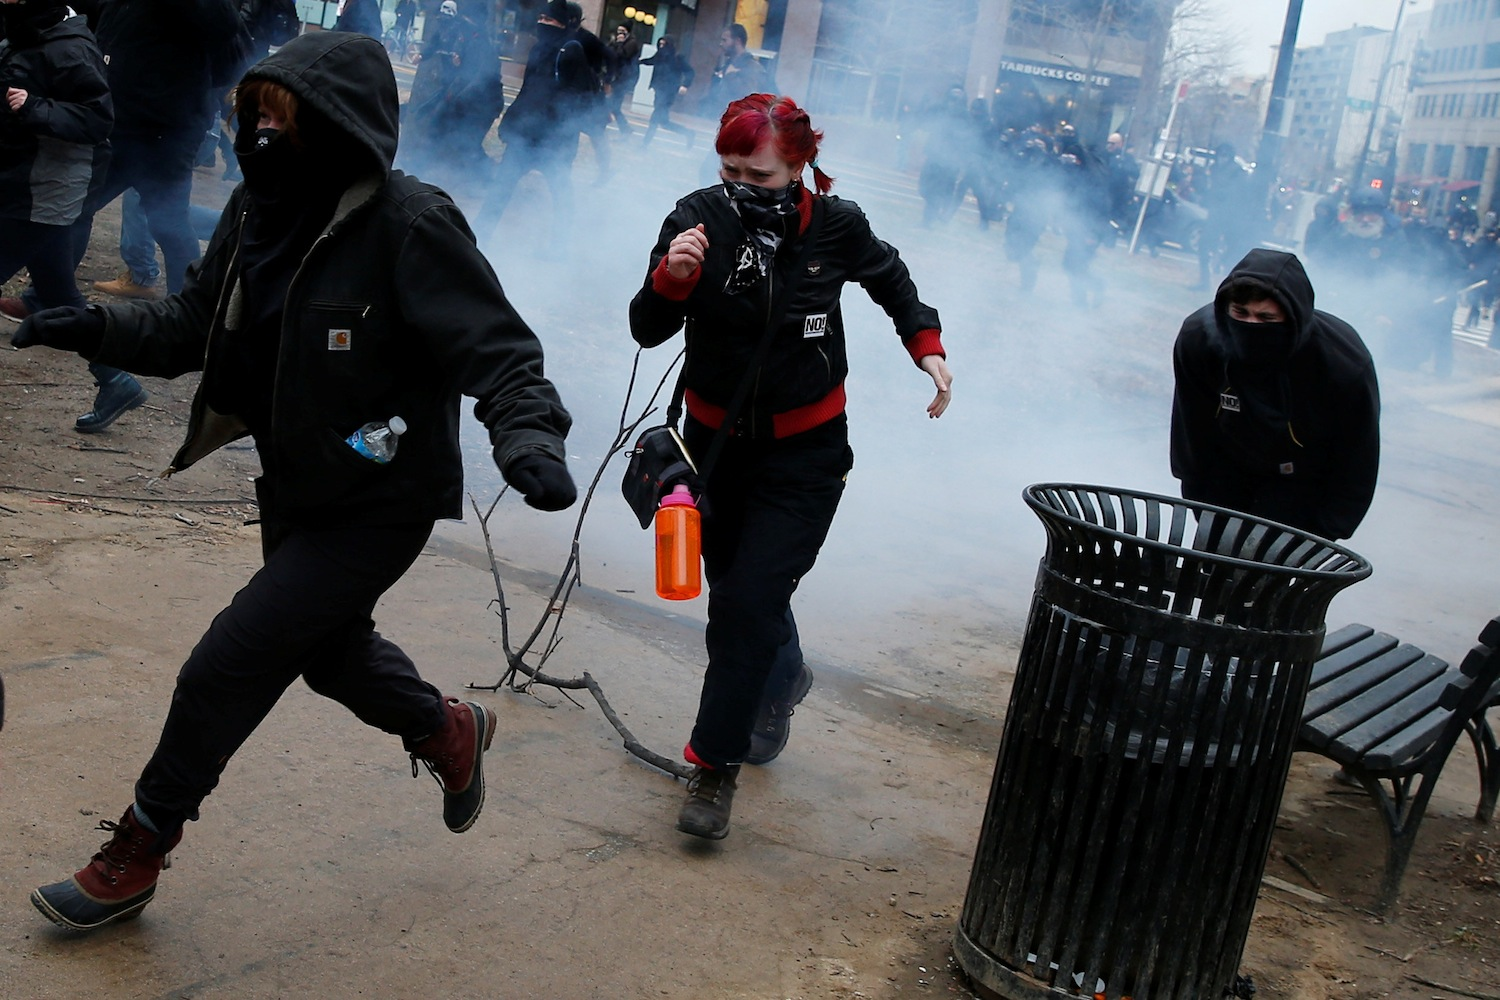 Activists run after being hit by a stun grenade while protesting against U.S. President Donald Trump on the sidelines of the inauguration in Washington, DC, U.S., January 20, 2017. REUTERS/Adrees Latif